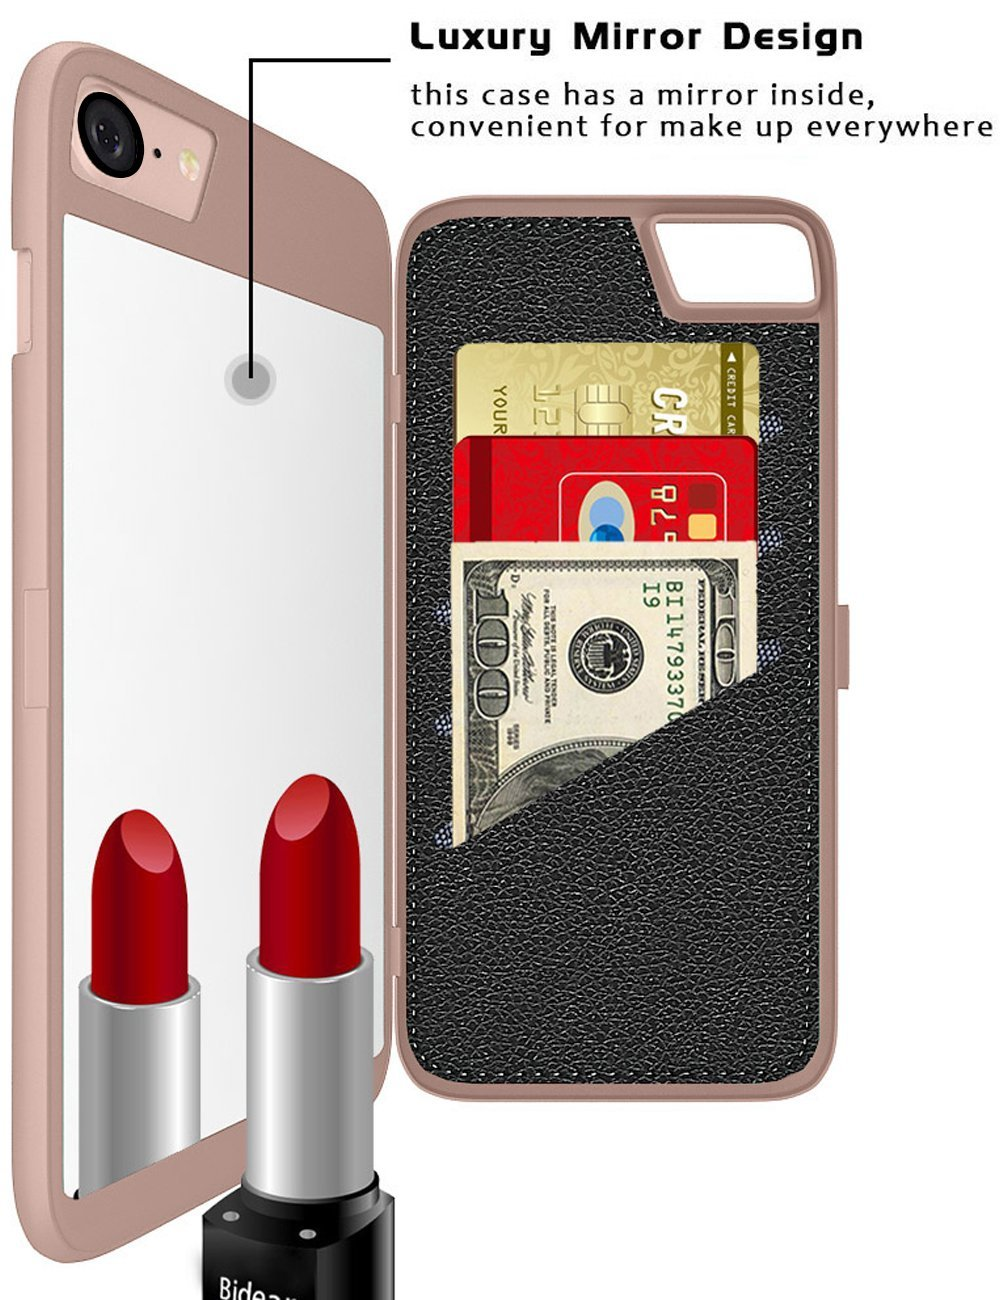 iPhone 6/6s Case with Hidden Back Wallet and Creative Mirror Design